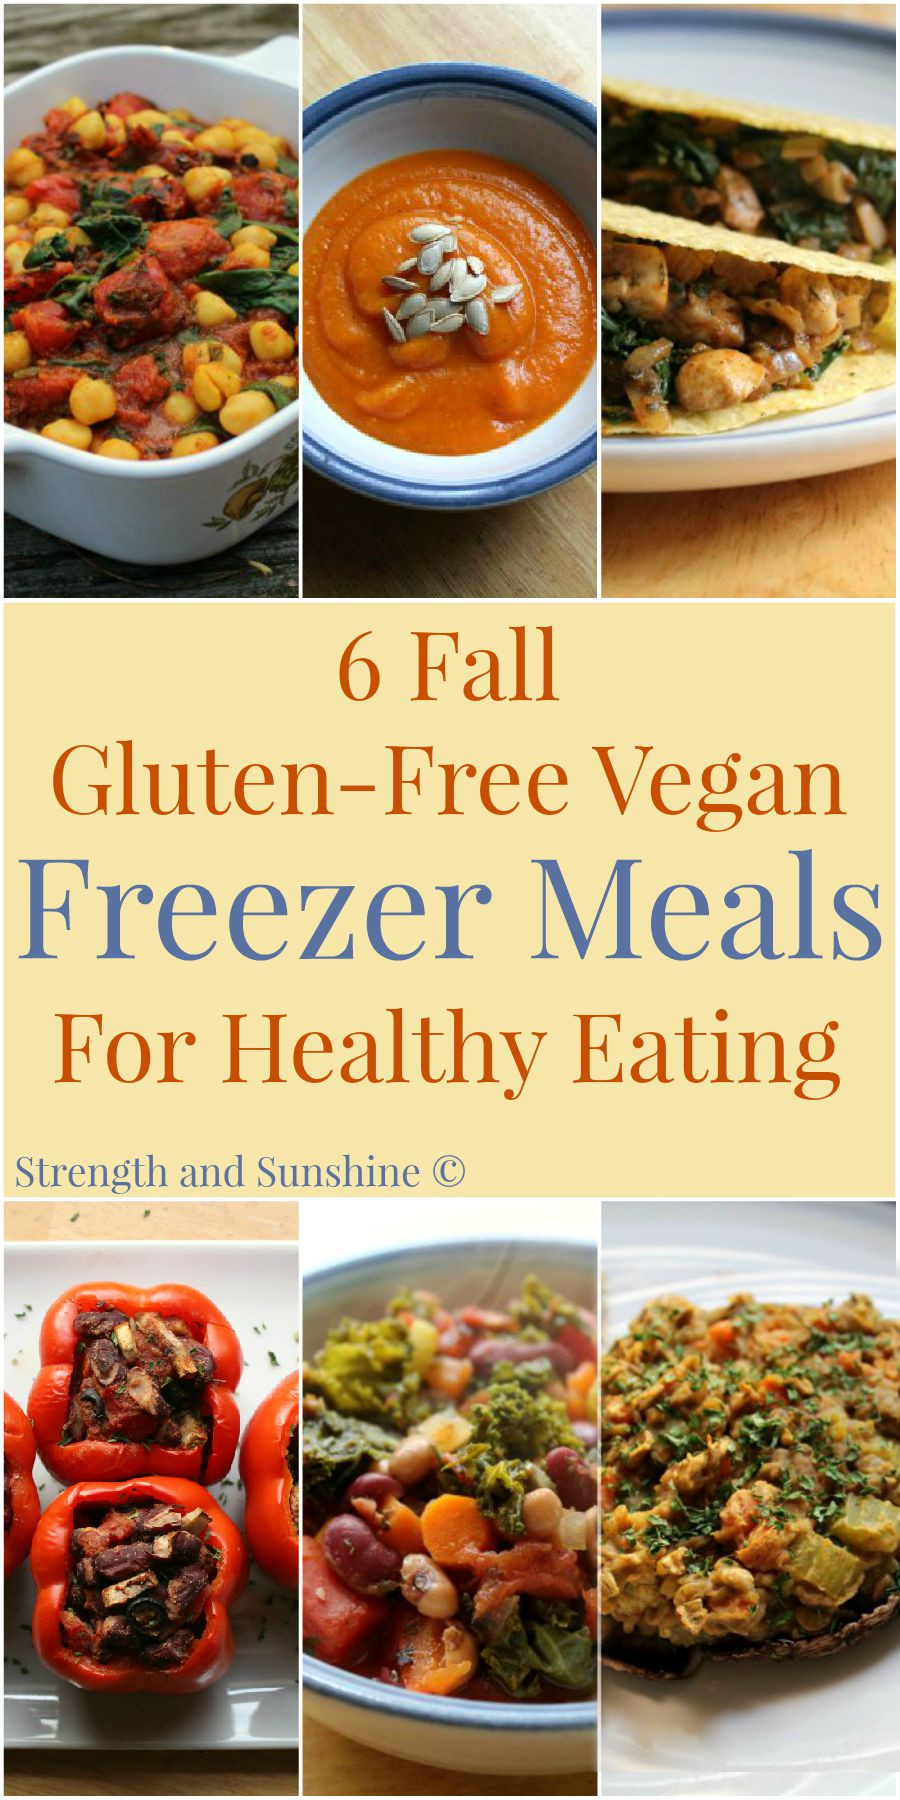 Healthy Gluten Free Recipes  6 Fall Gluten Free Vegan Freezer Meals For Healthy Eating